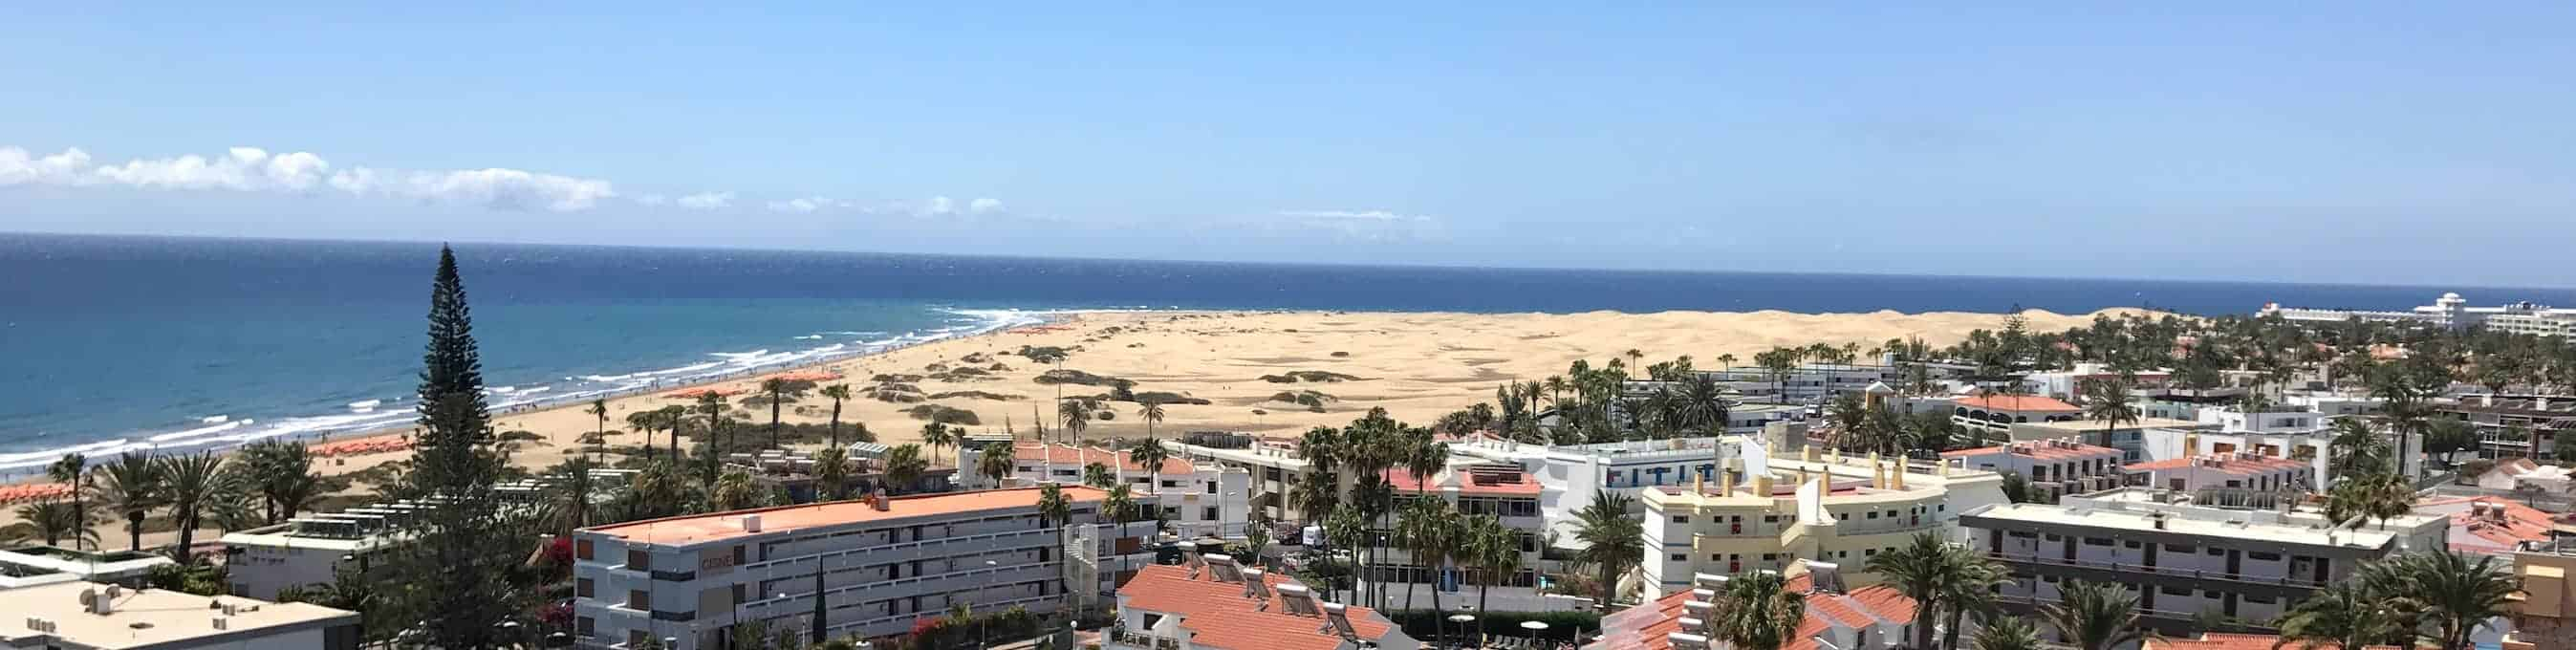 Top 50 Things to do in Playa del Ingles - Gran Canaria - 2019